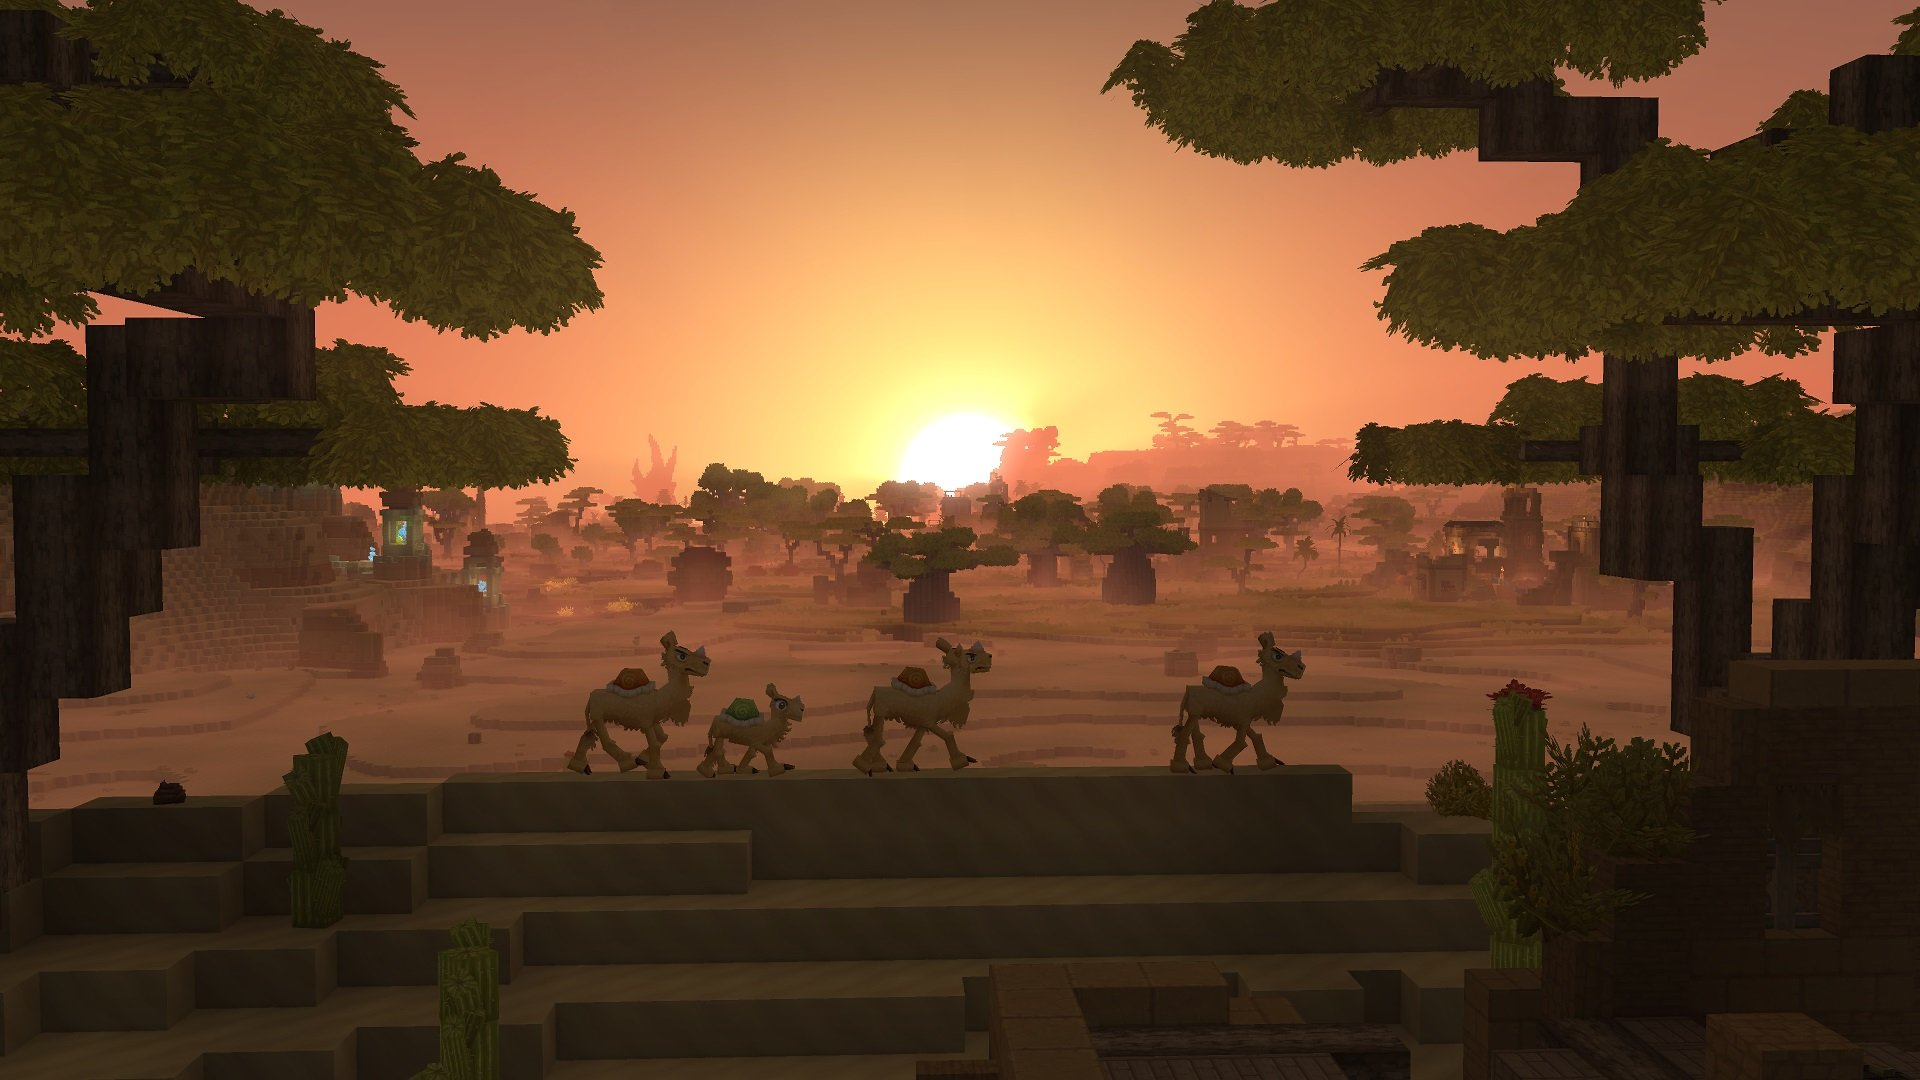 Atmosphere Studios Roblox Riot Games Dives Into The Sandbox With Hypixel Studios Acquisition Gamedaily Biz